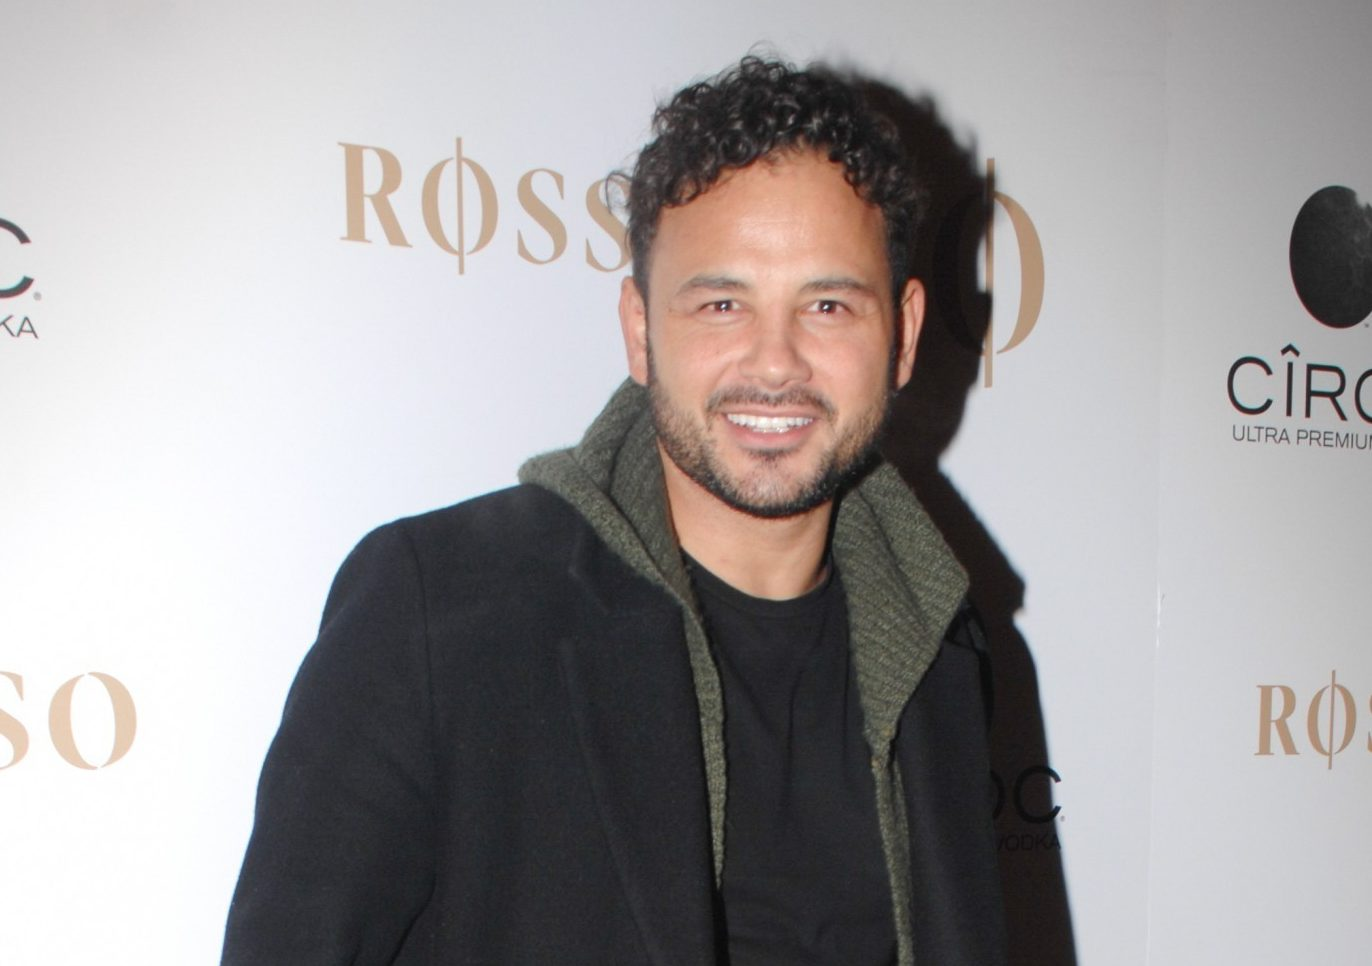 Corrie star Ryan Thomas makes his return to Soapland